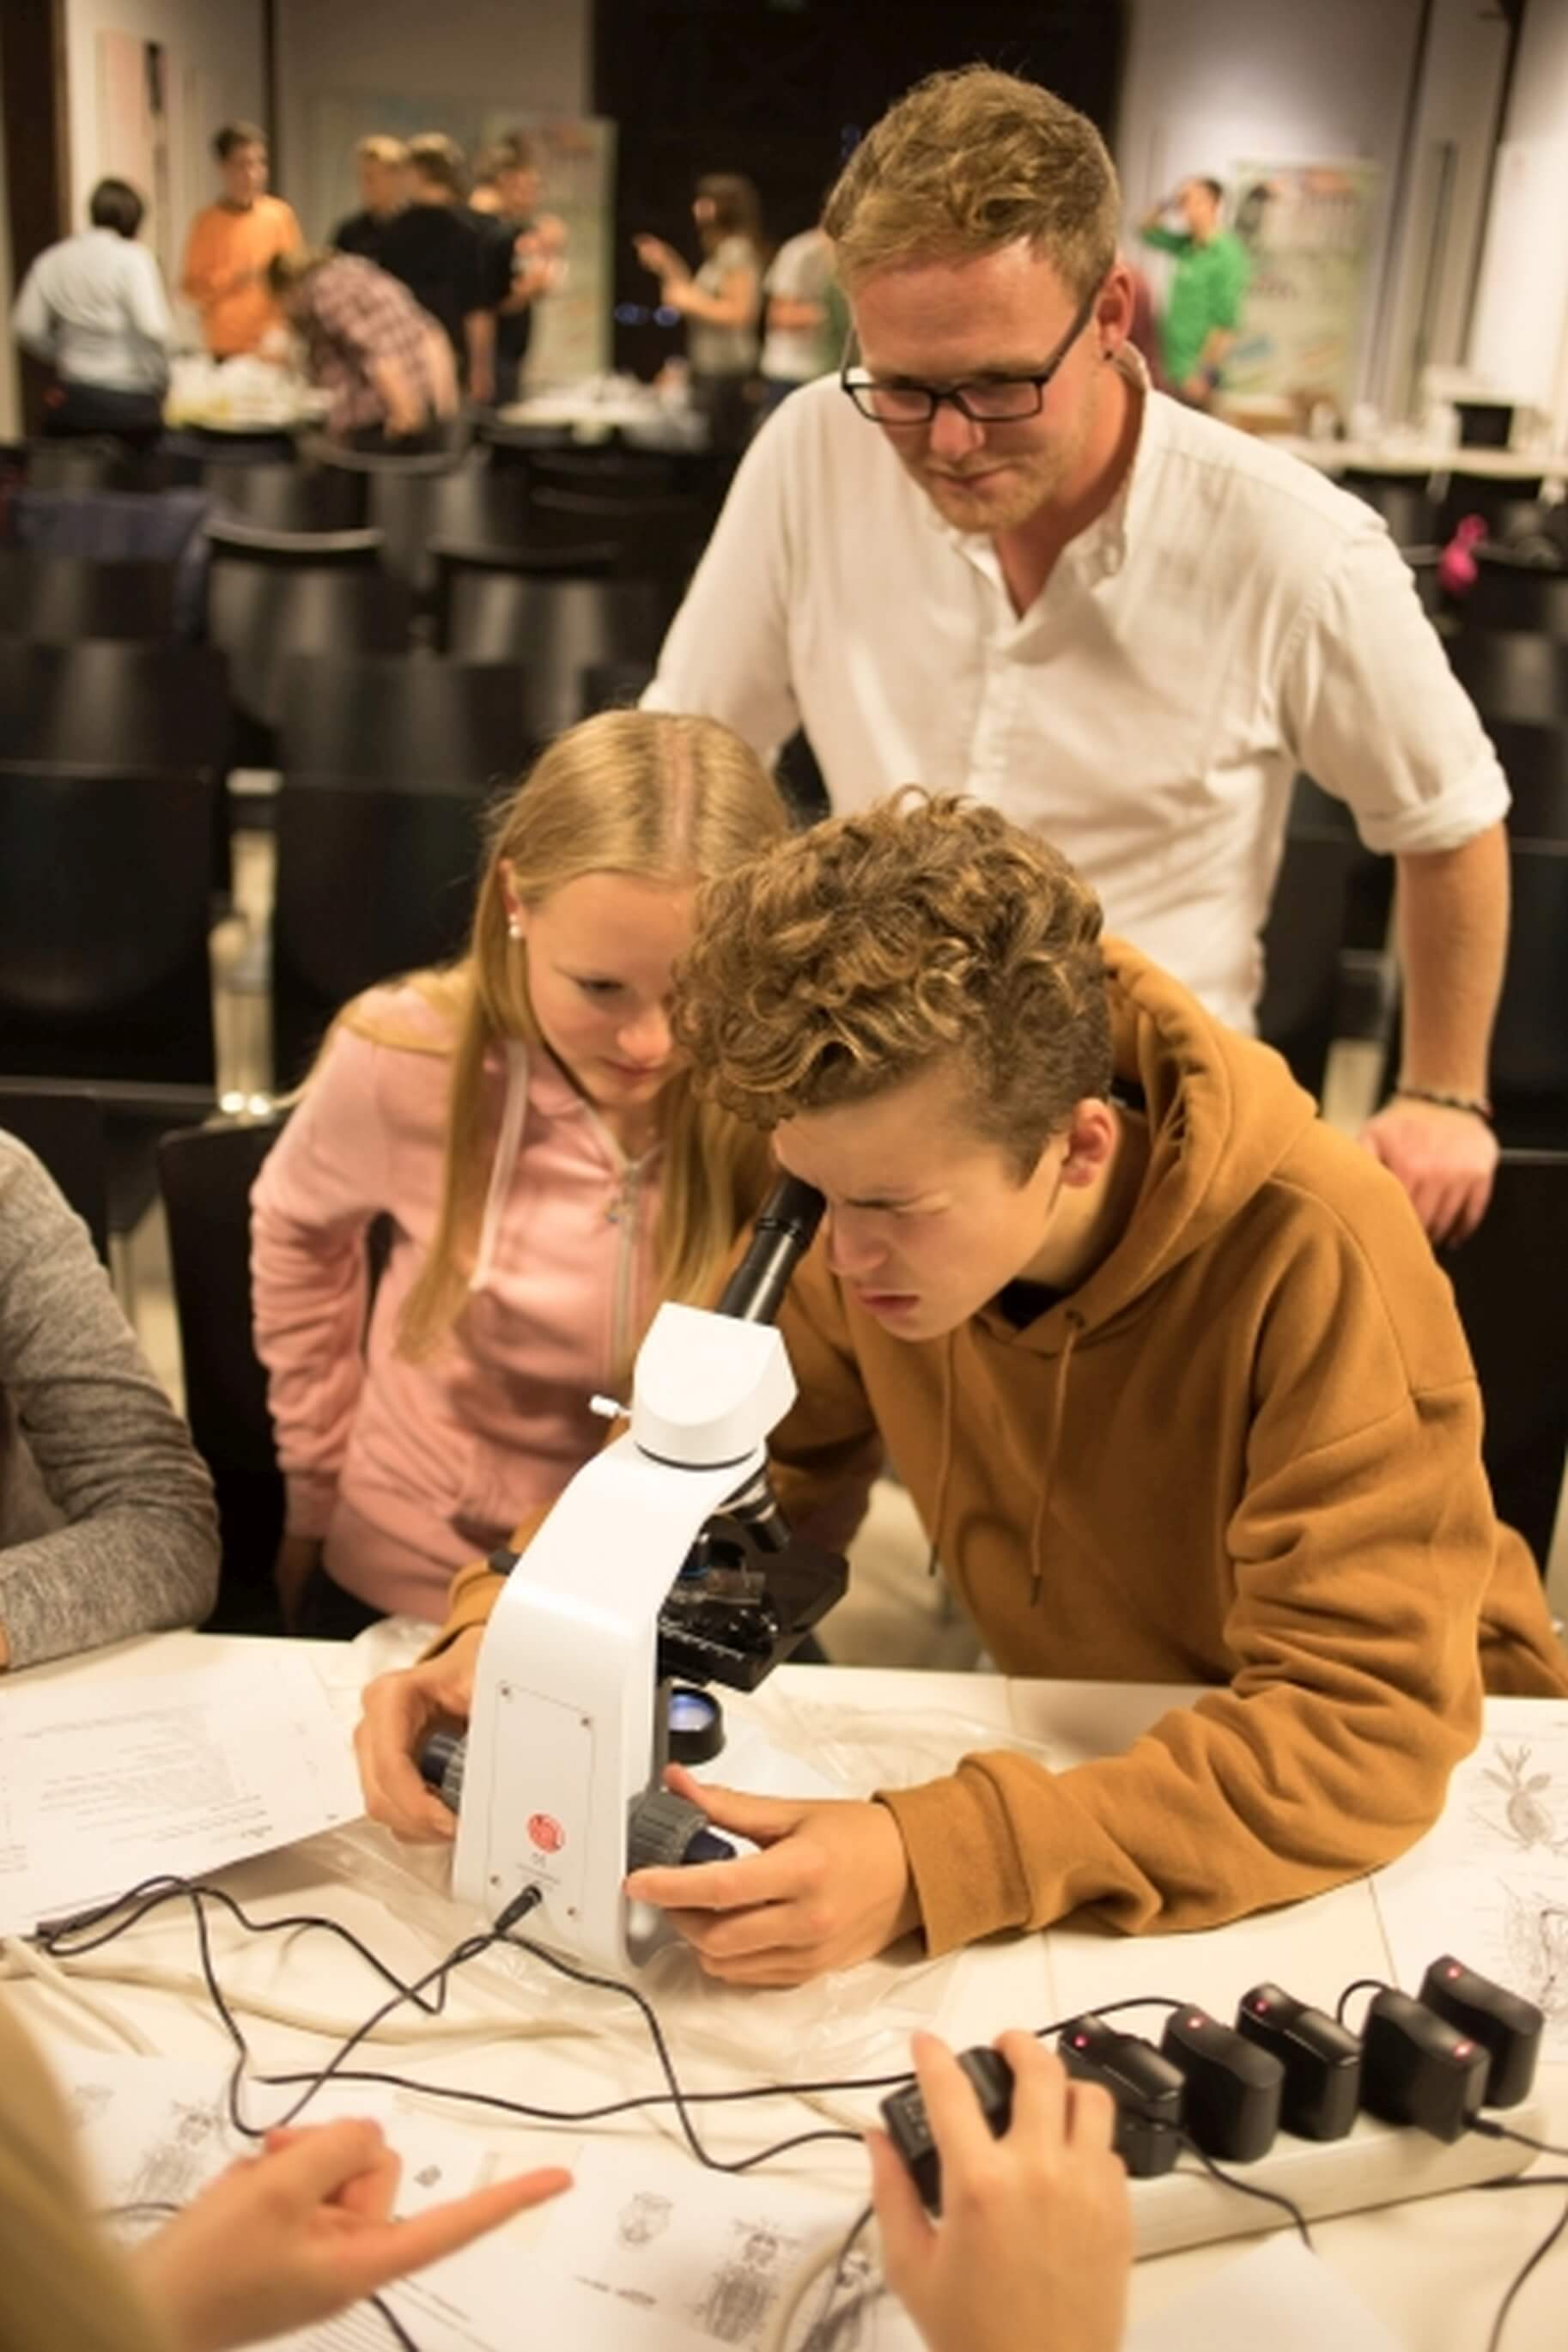 Students look through the microscope, teacher stands behind them